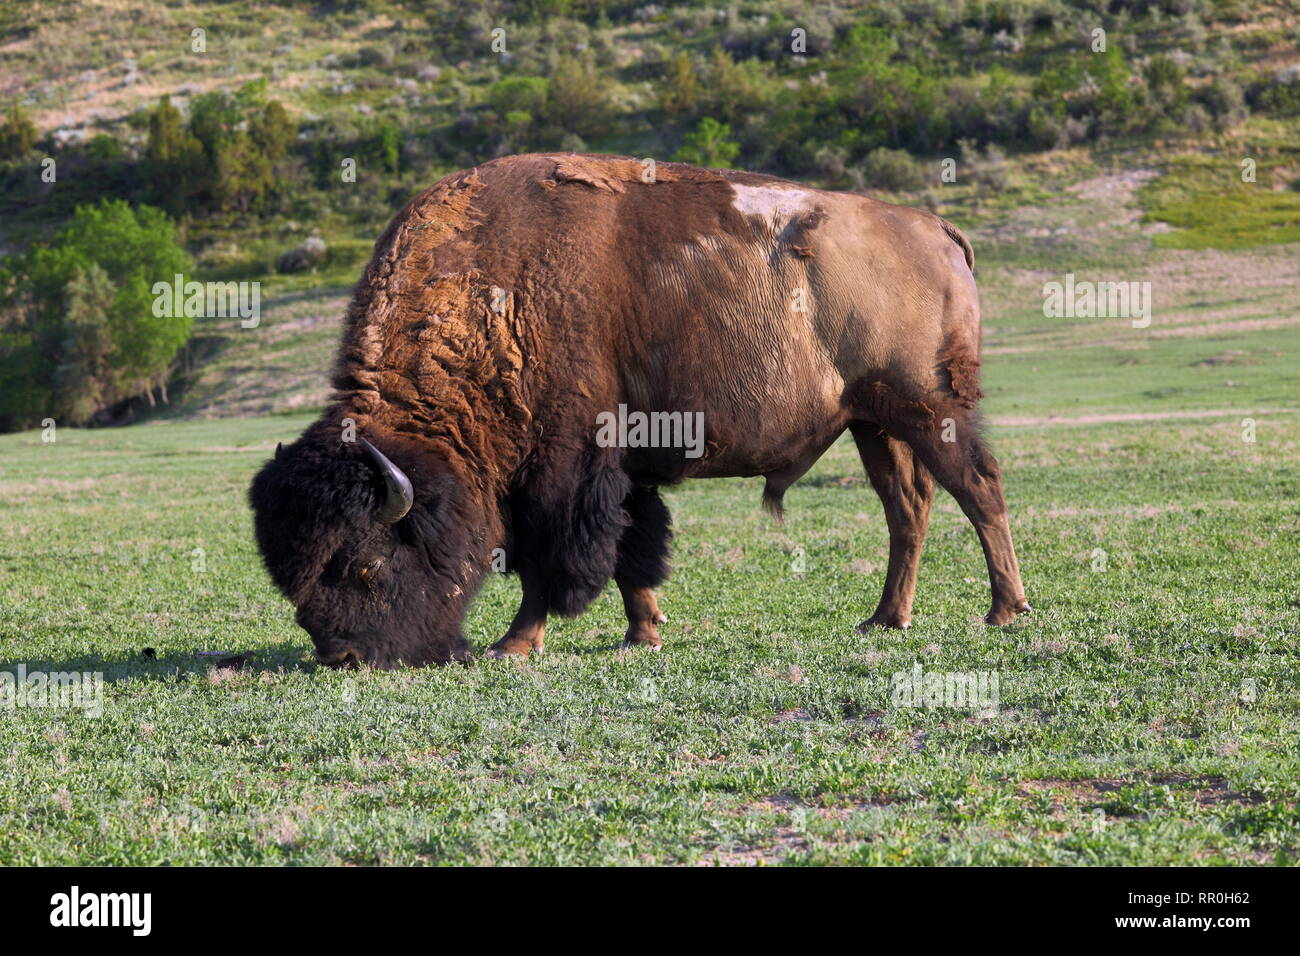 zoology / animals, mammal / mammalian (mammalia), American buffalo (Bos bison) im Theodore Roosevelt N, Additional-Rights-Clearance-Info-Not-Available - Stock Image